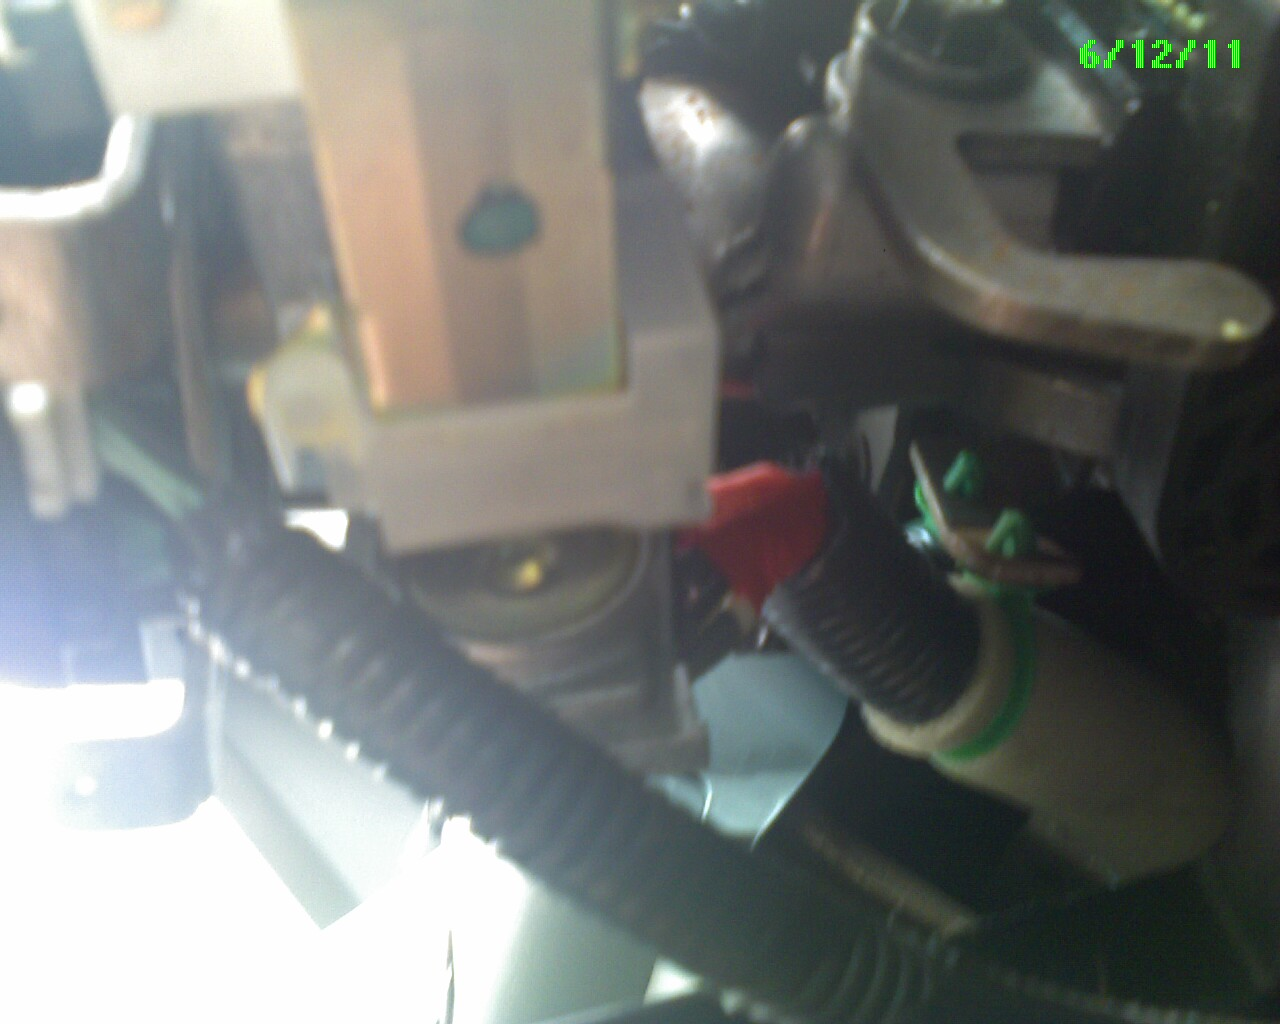 2004 Honda Pilot Ignition Wiring Diagram Trusted Diagrams 2003 Switch Problem Solution 2012 Cr V